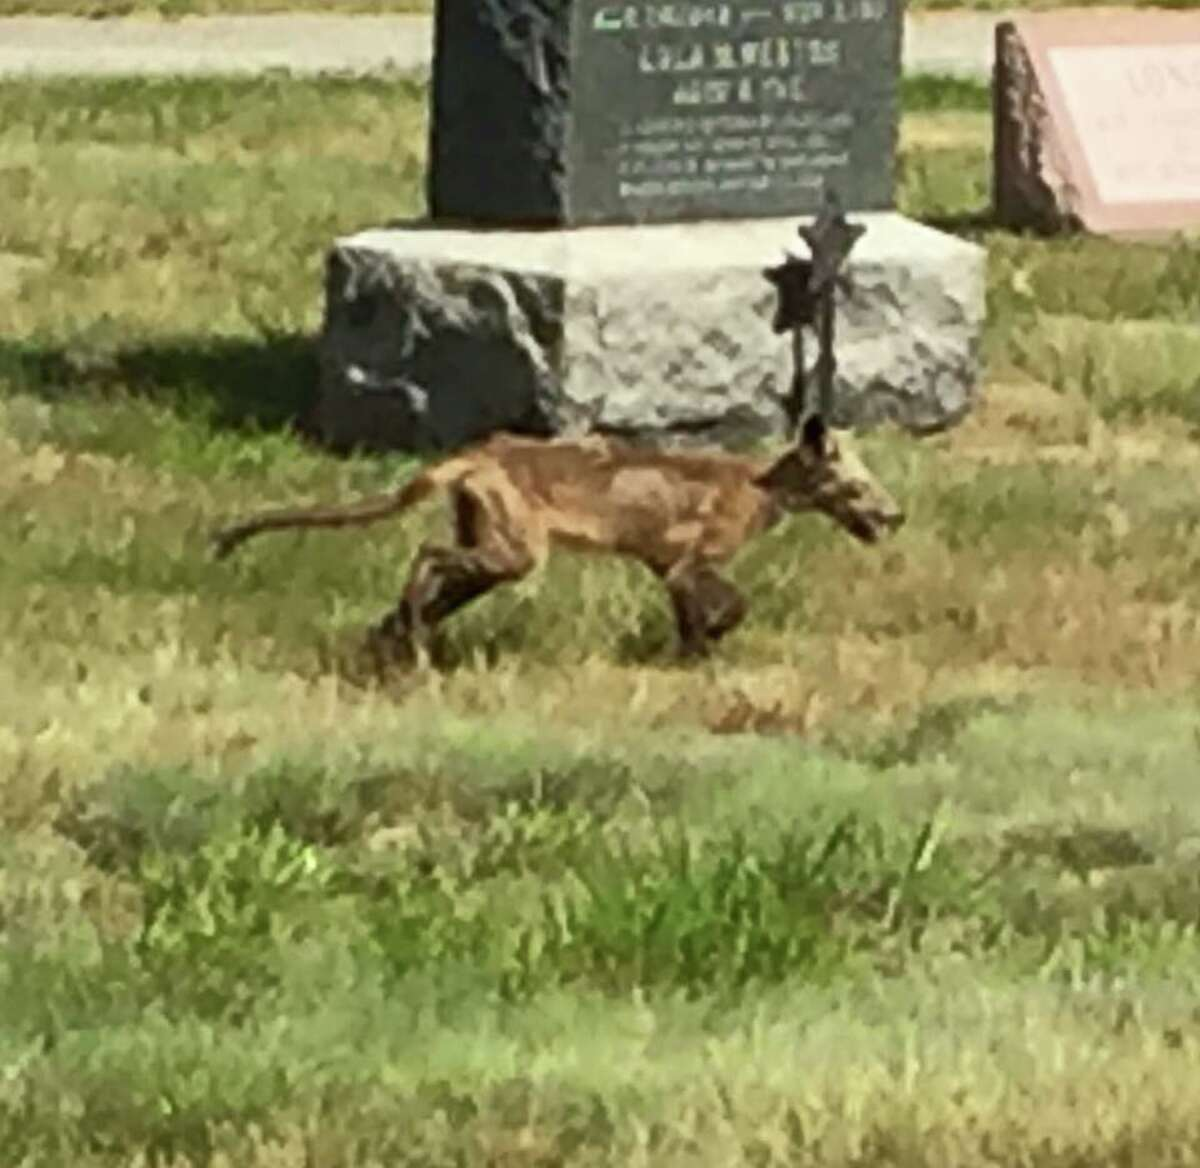 Is there a chupacabra on the loose in California? Here's an alleged chupacabra spotted in New Hampshire. Click ahead to read more about the mythical beast.